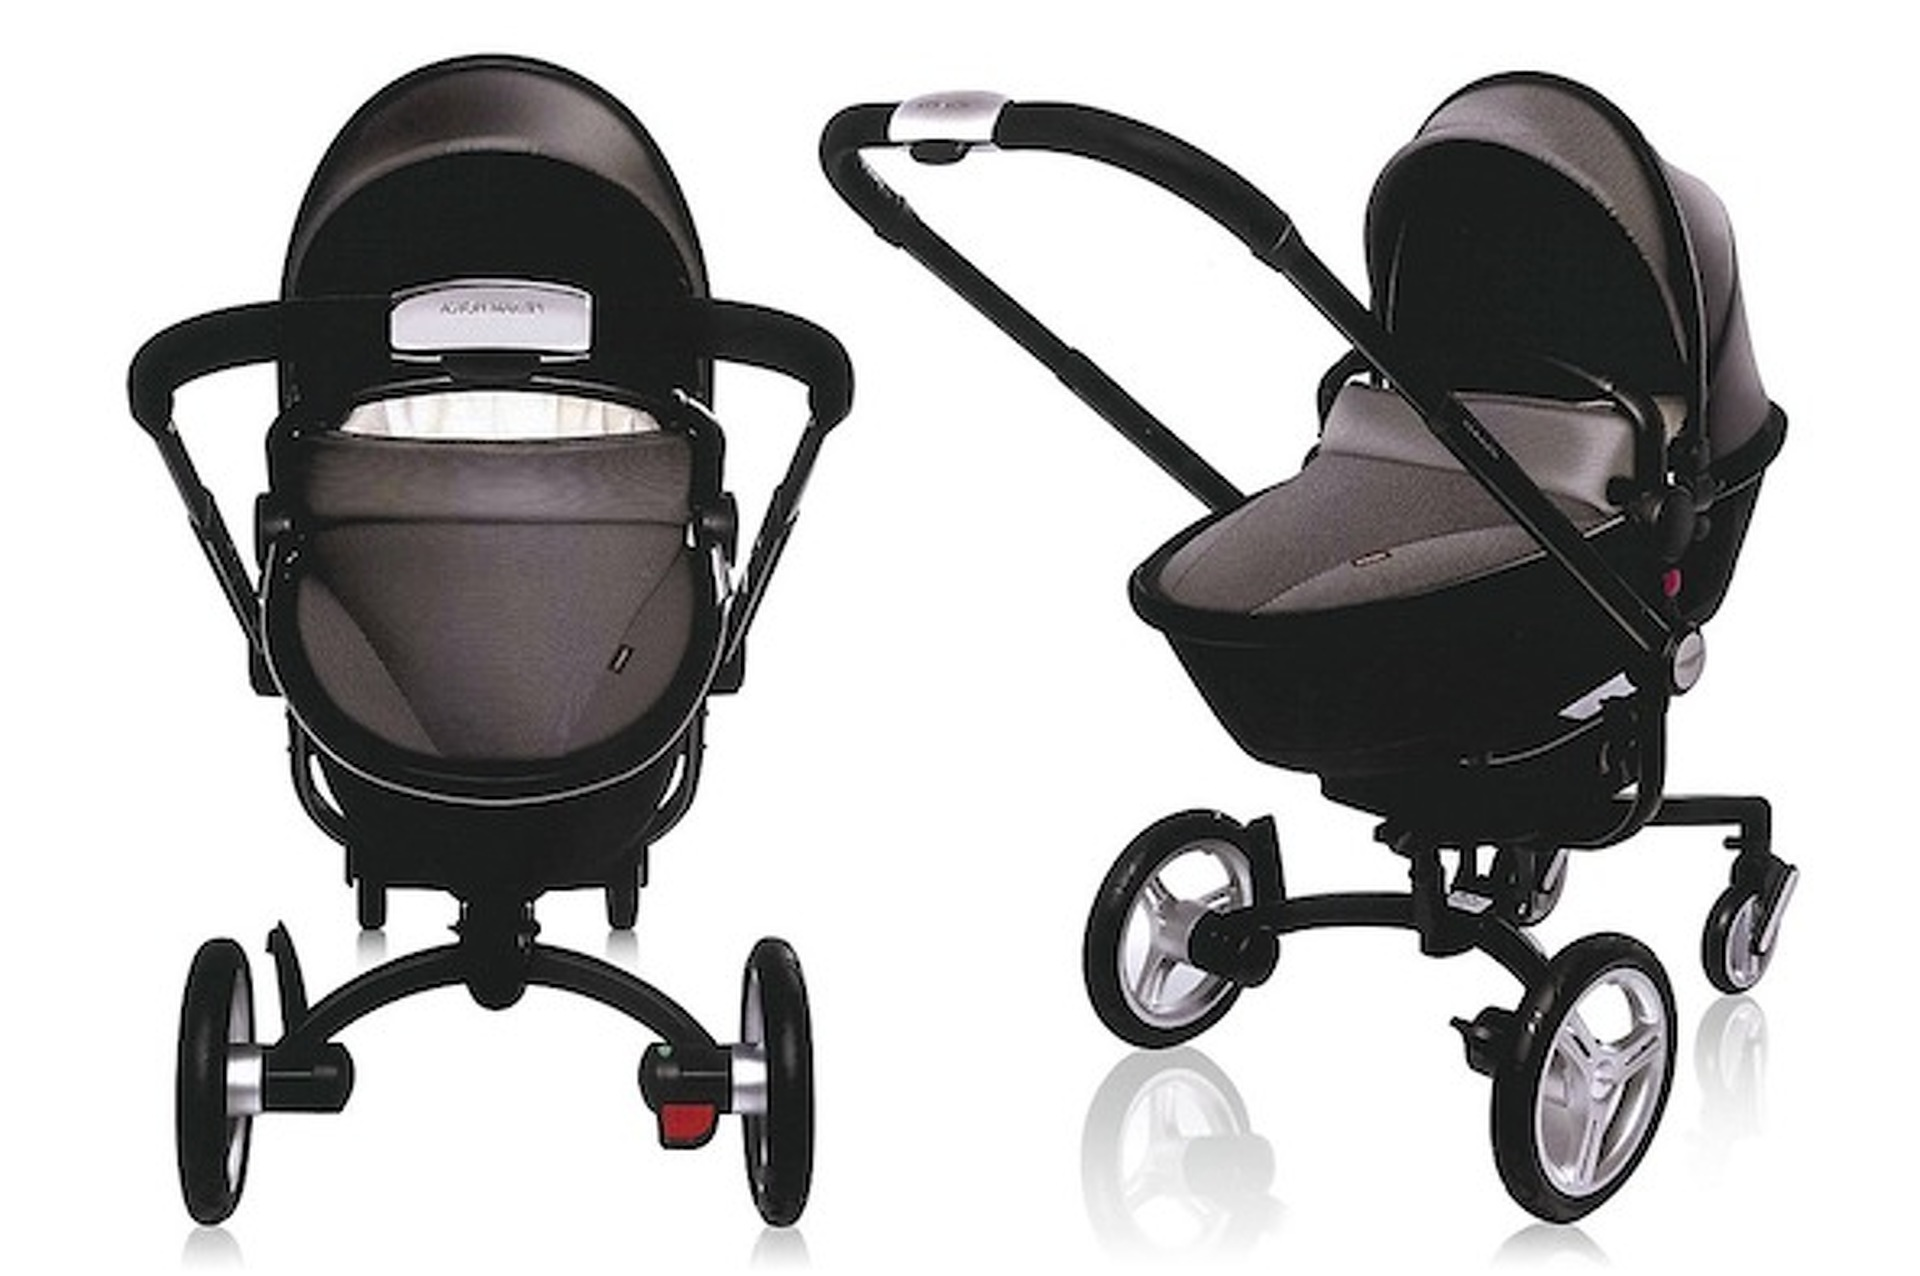 For $3,000 You Can Buy an Aston Martin Baby Stroller